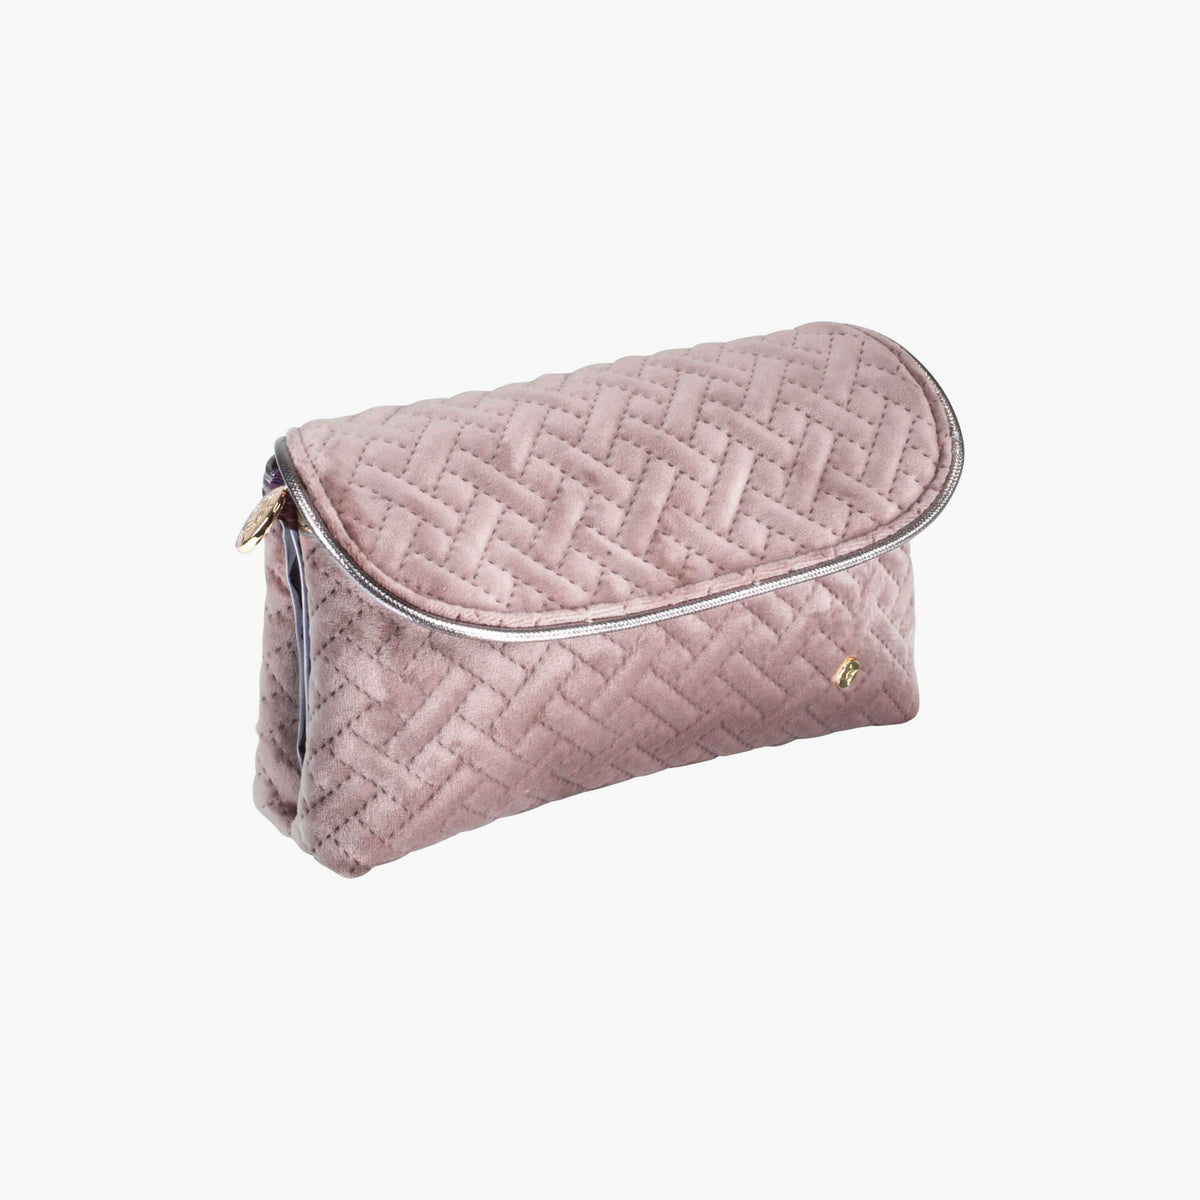 ... Katie Folding Cosmetic Bag Katie Folding Cosmetic in Milan - Dusty Plum  Quarterfront View in in ... 0a9aa8be5f133